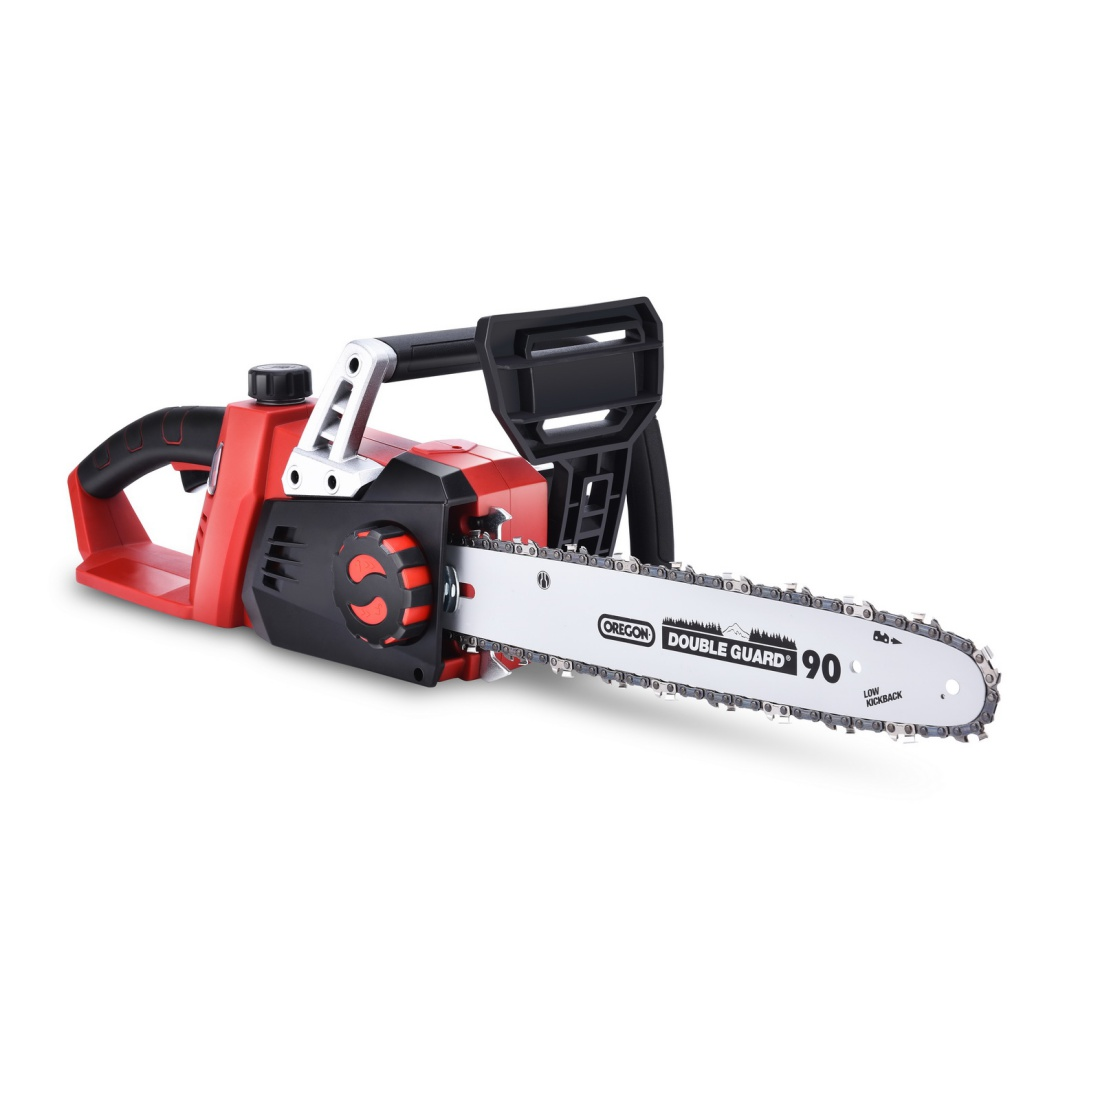 NEW Matrix 40V Cordless Chainsaw 1.5ah Lithium Battery&1.5ah Charger Power Tool